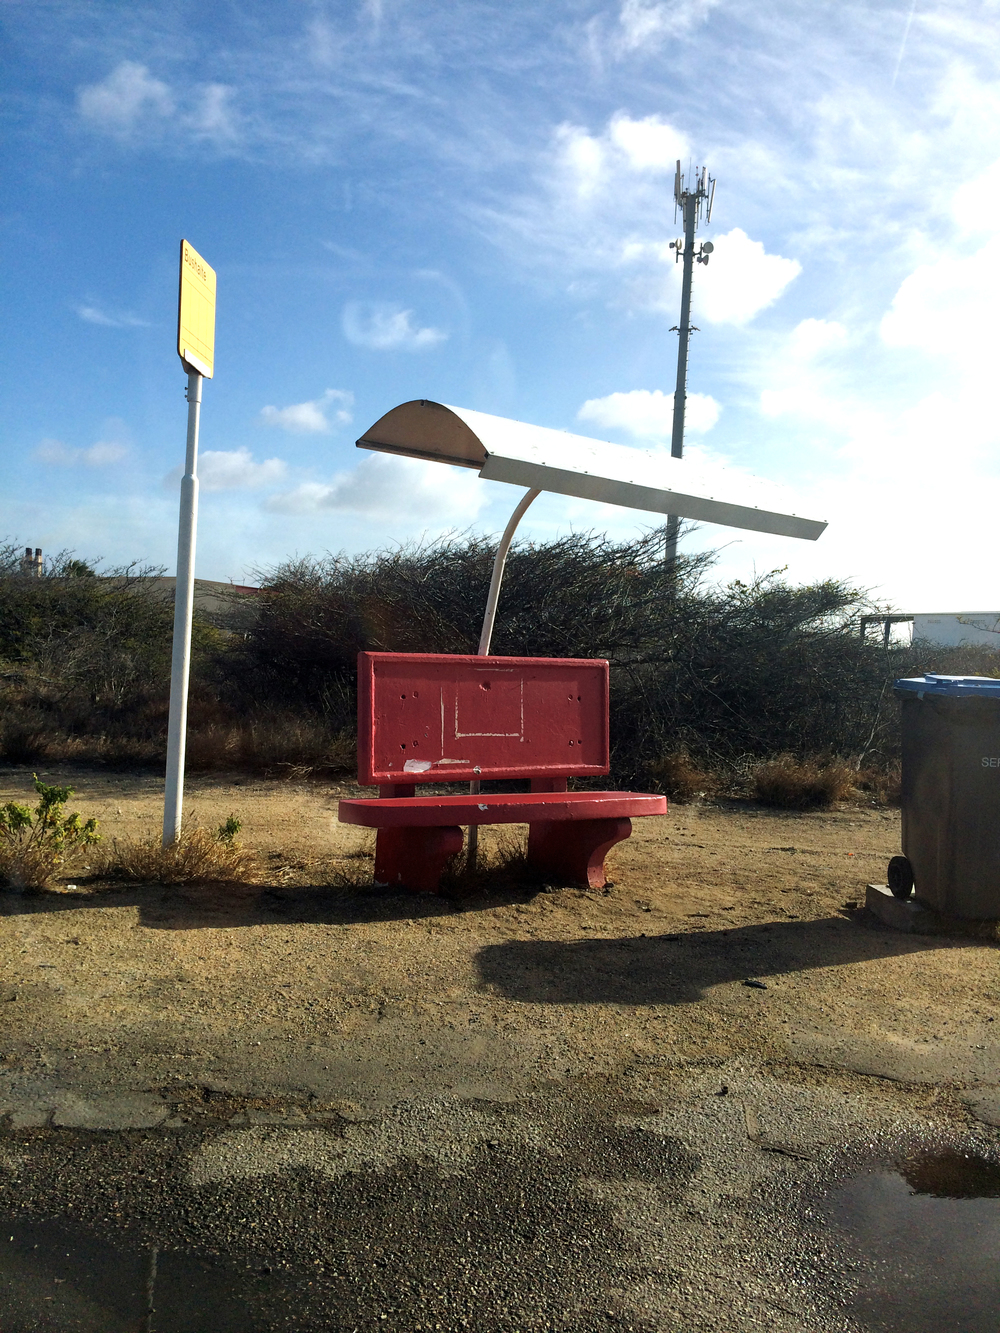 Simple bus stop in Aruba